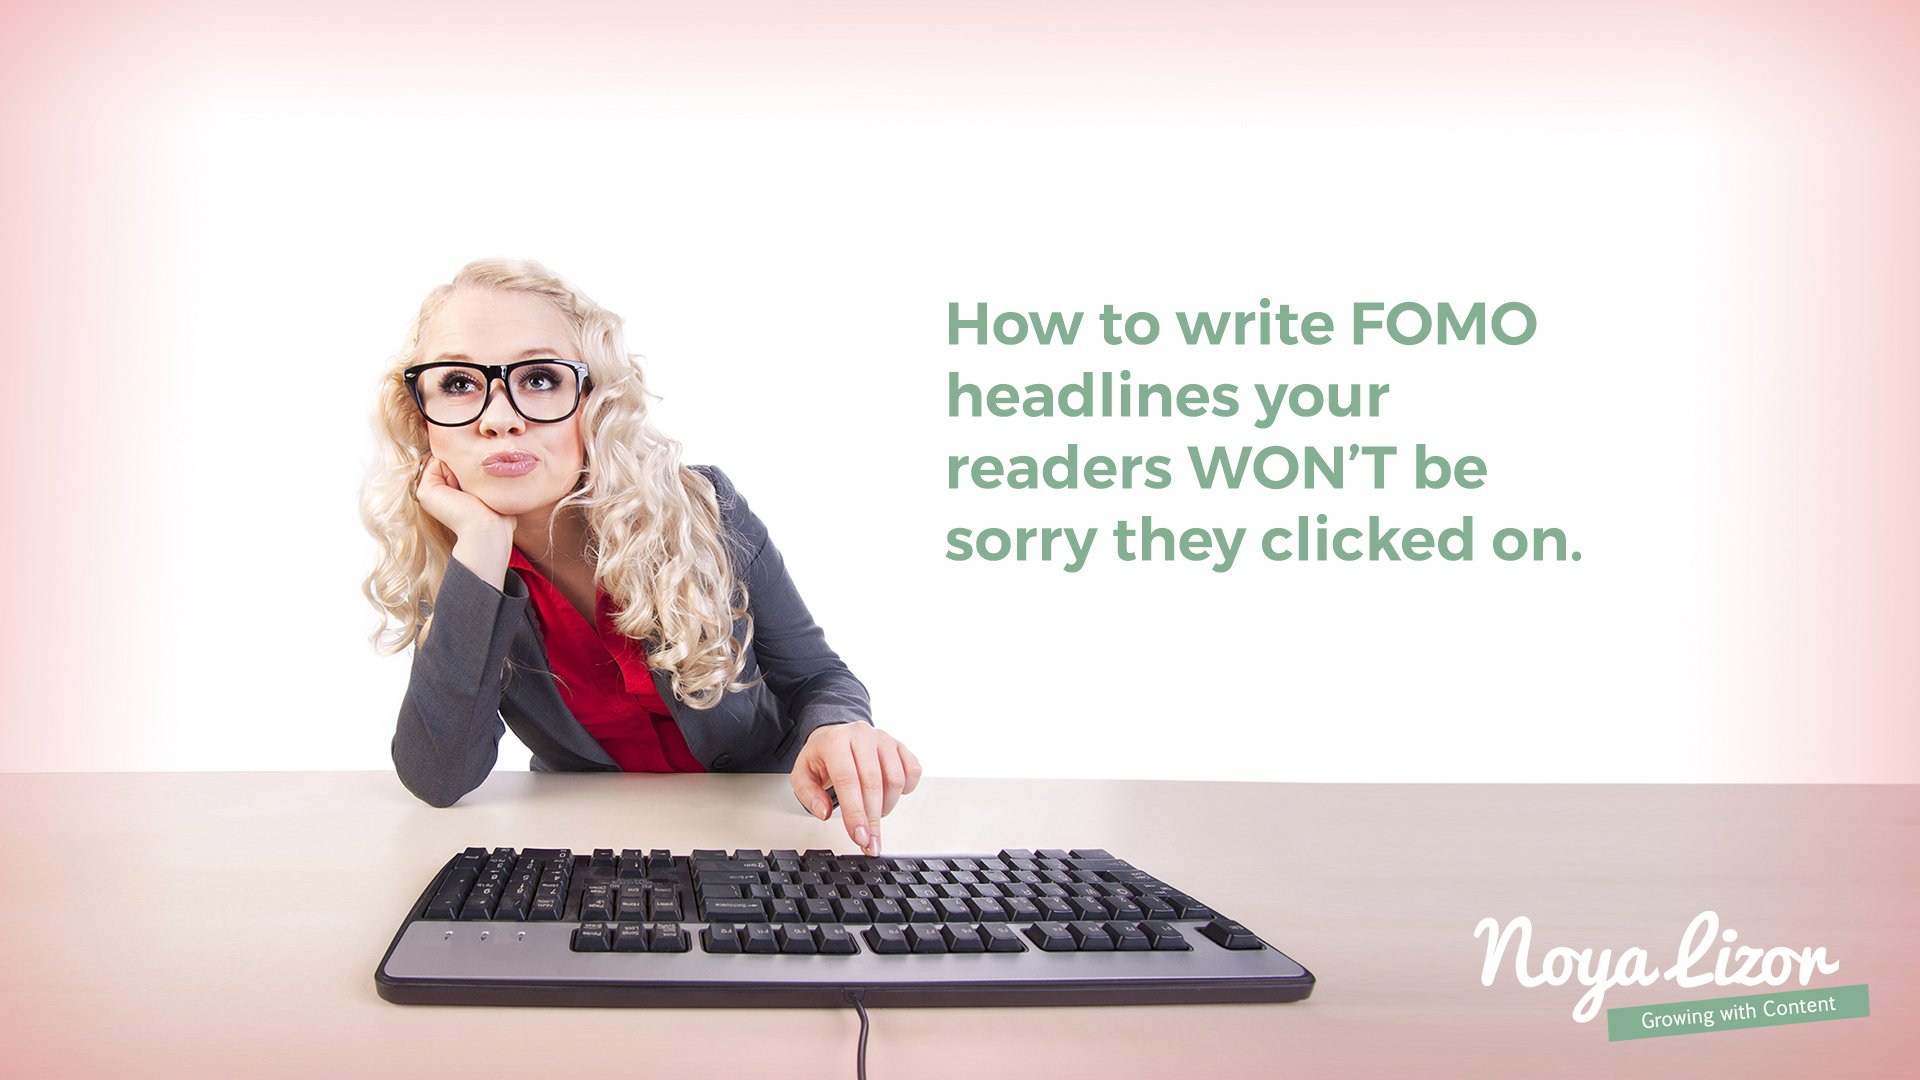 How to write FOMO headlines your readers won't be sorry they clicked on